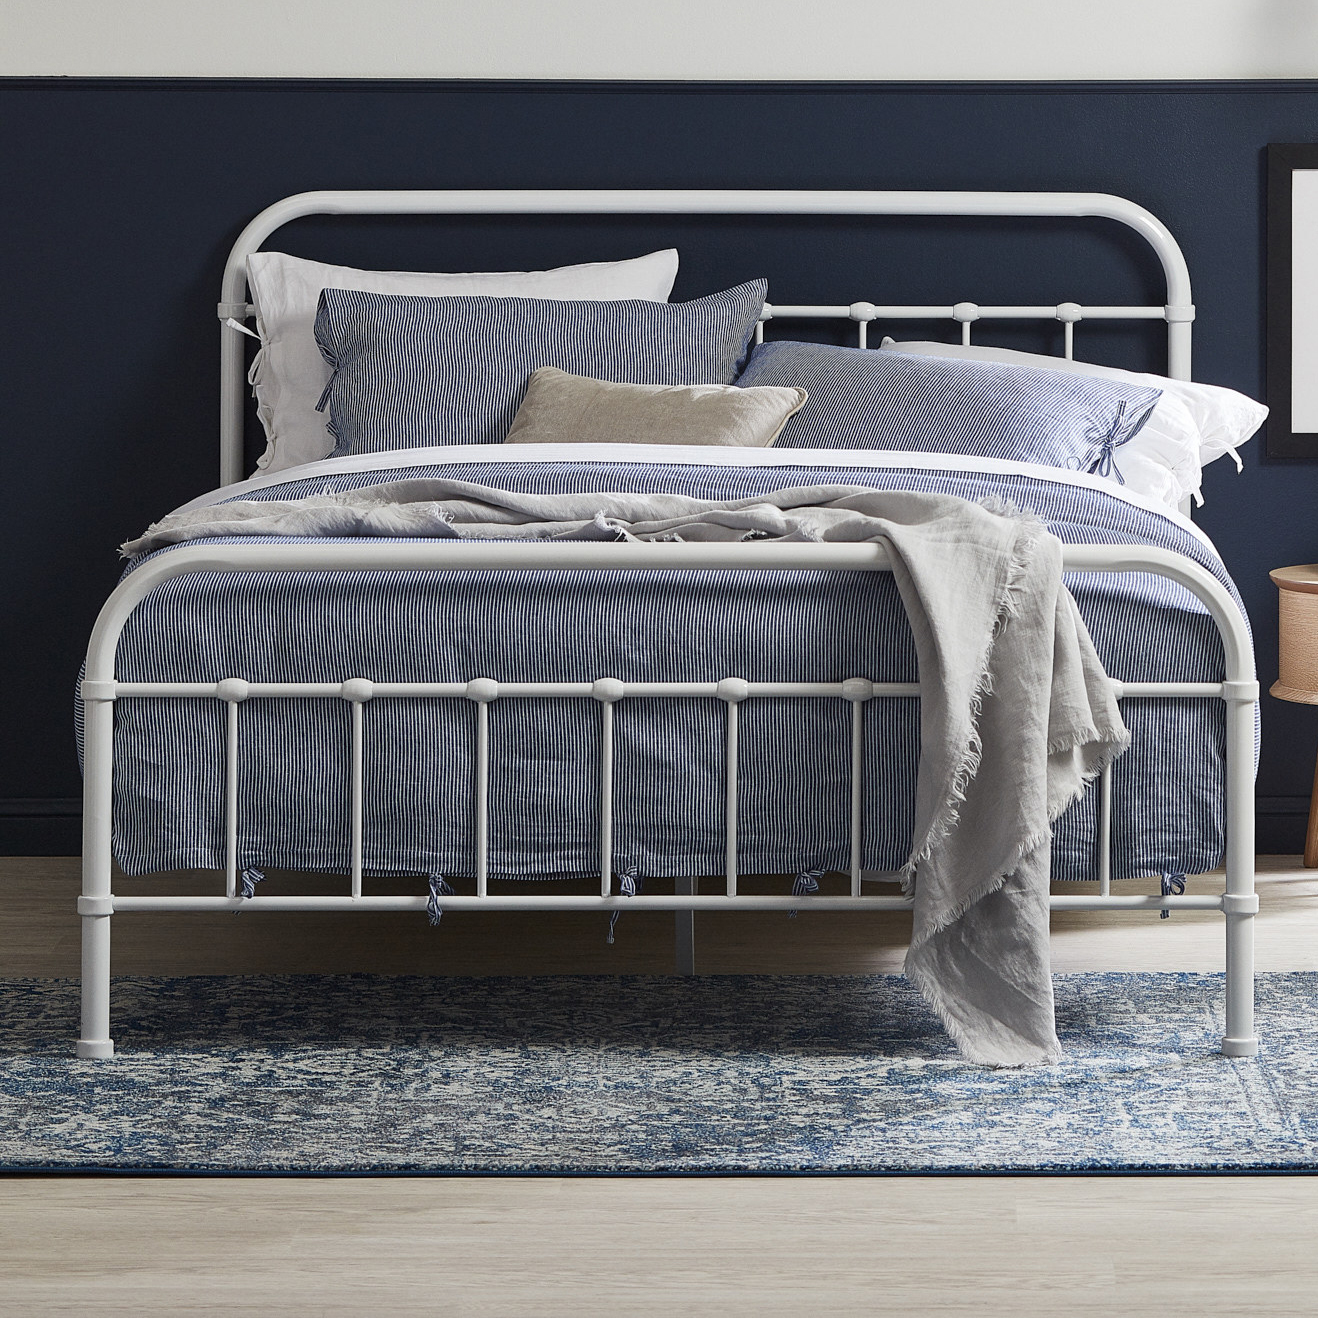 Temple Webster White Bailey Metal Bed Frame